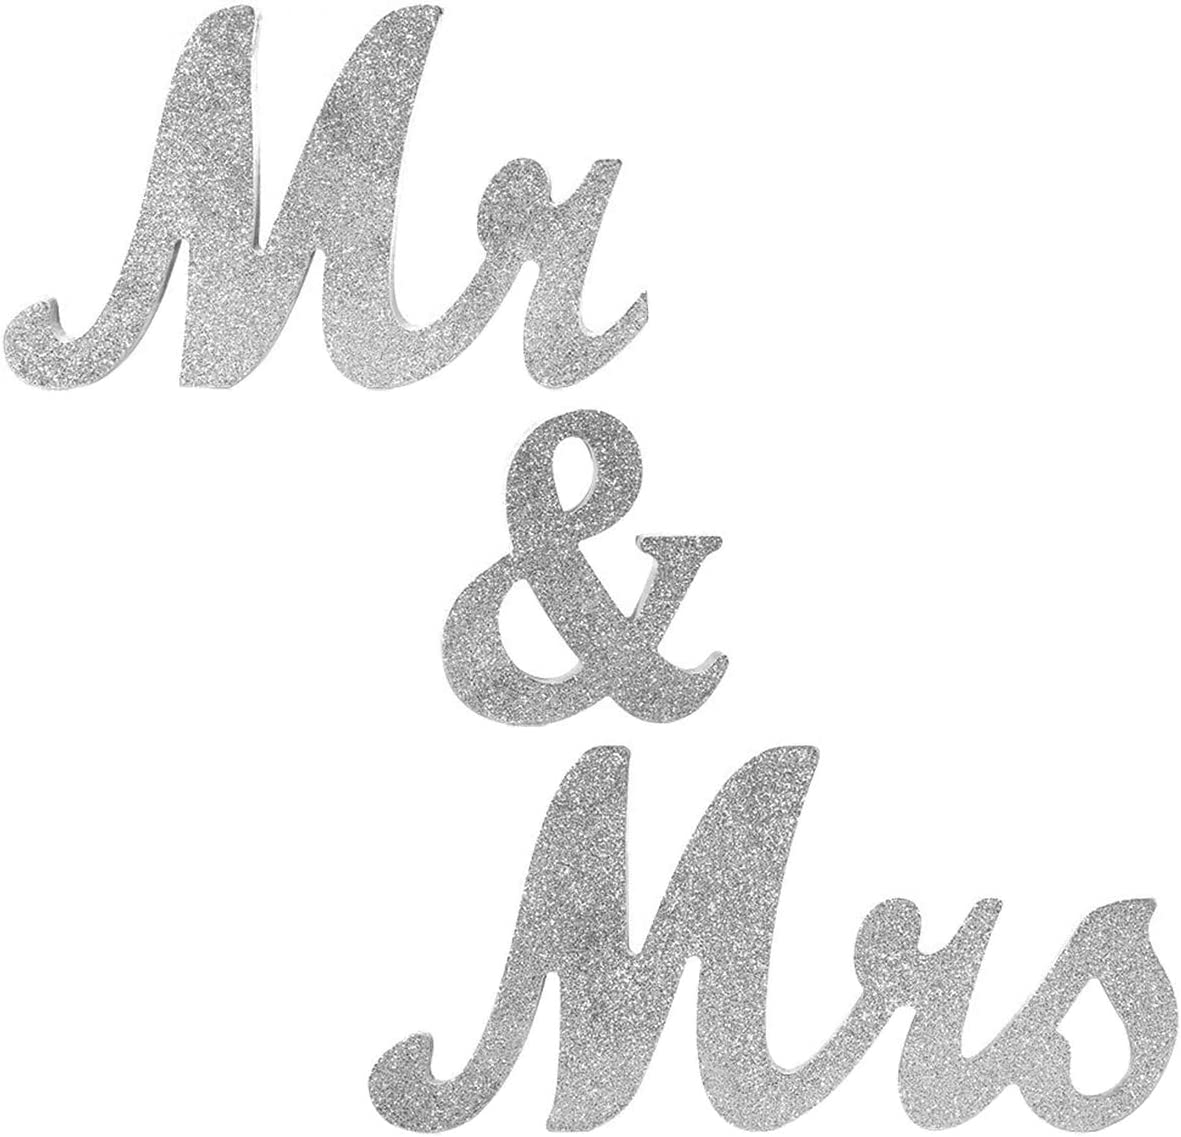 Mr Mrs Sign for Wedding Table,Mr and Mrs Wooden Letters,Large Mr. & Mrs.Party Decoration Items,Head Table Wedding Wood Letter,Just Married Sign Anniversary Party Valentine's Day Vintage Decor,Silver